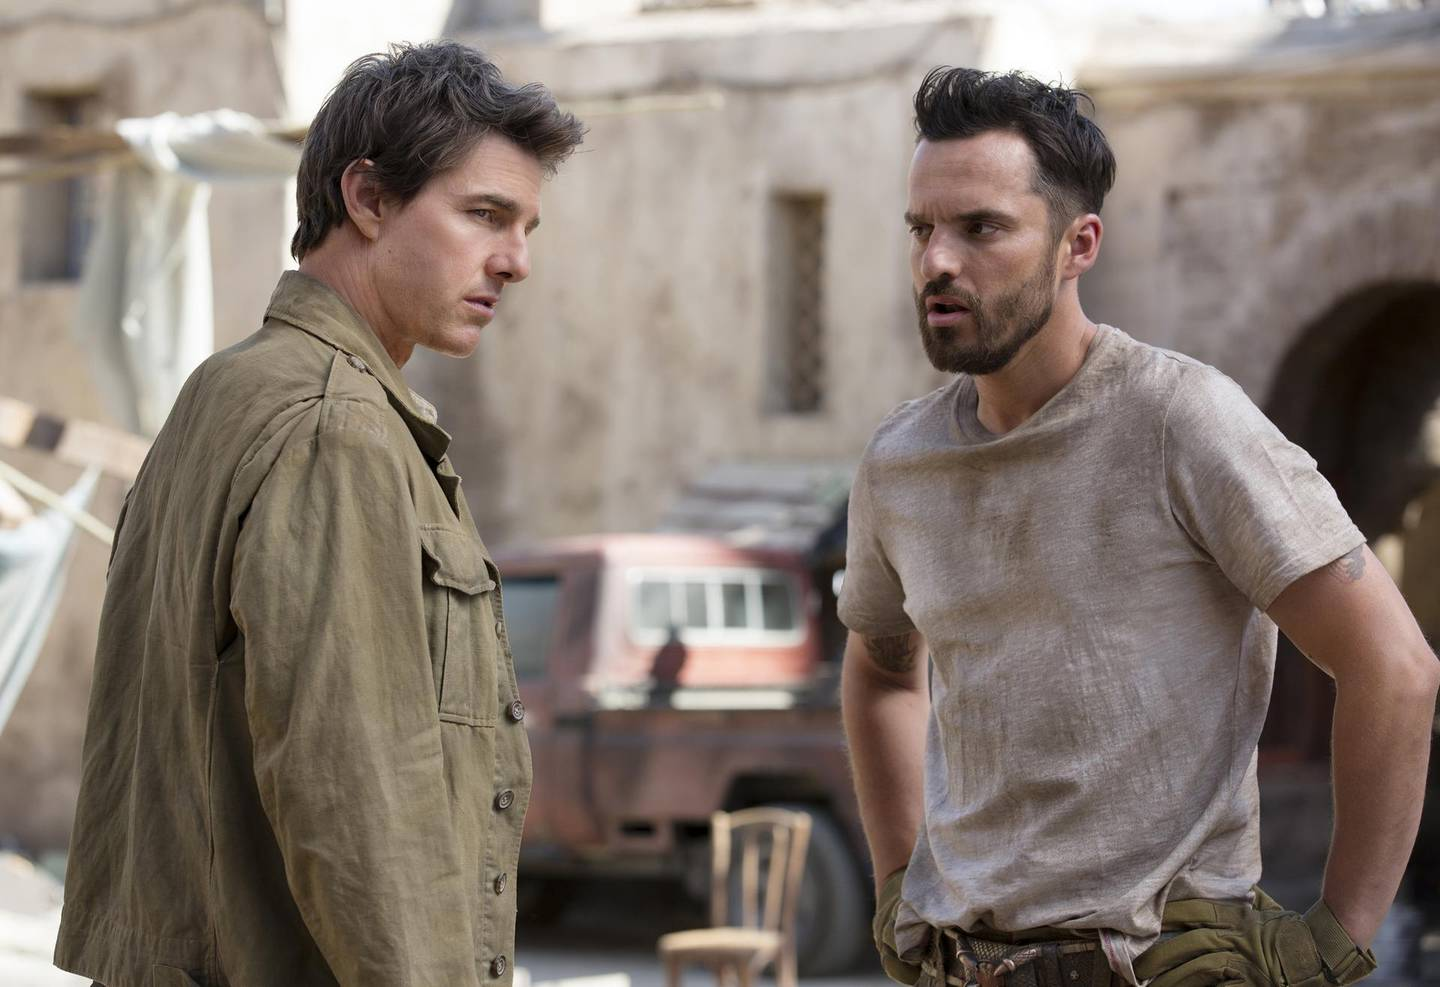 Tom Cruise and Jake Johnson in The Mummy. Courtesy Universal Pictures